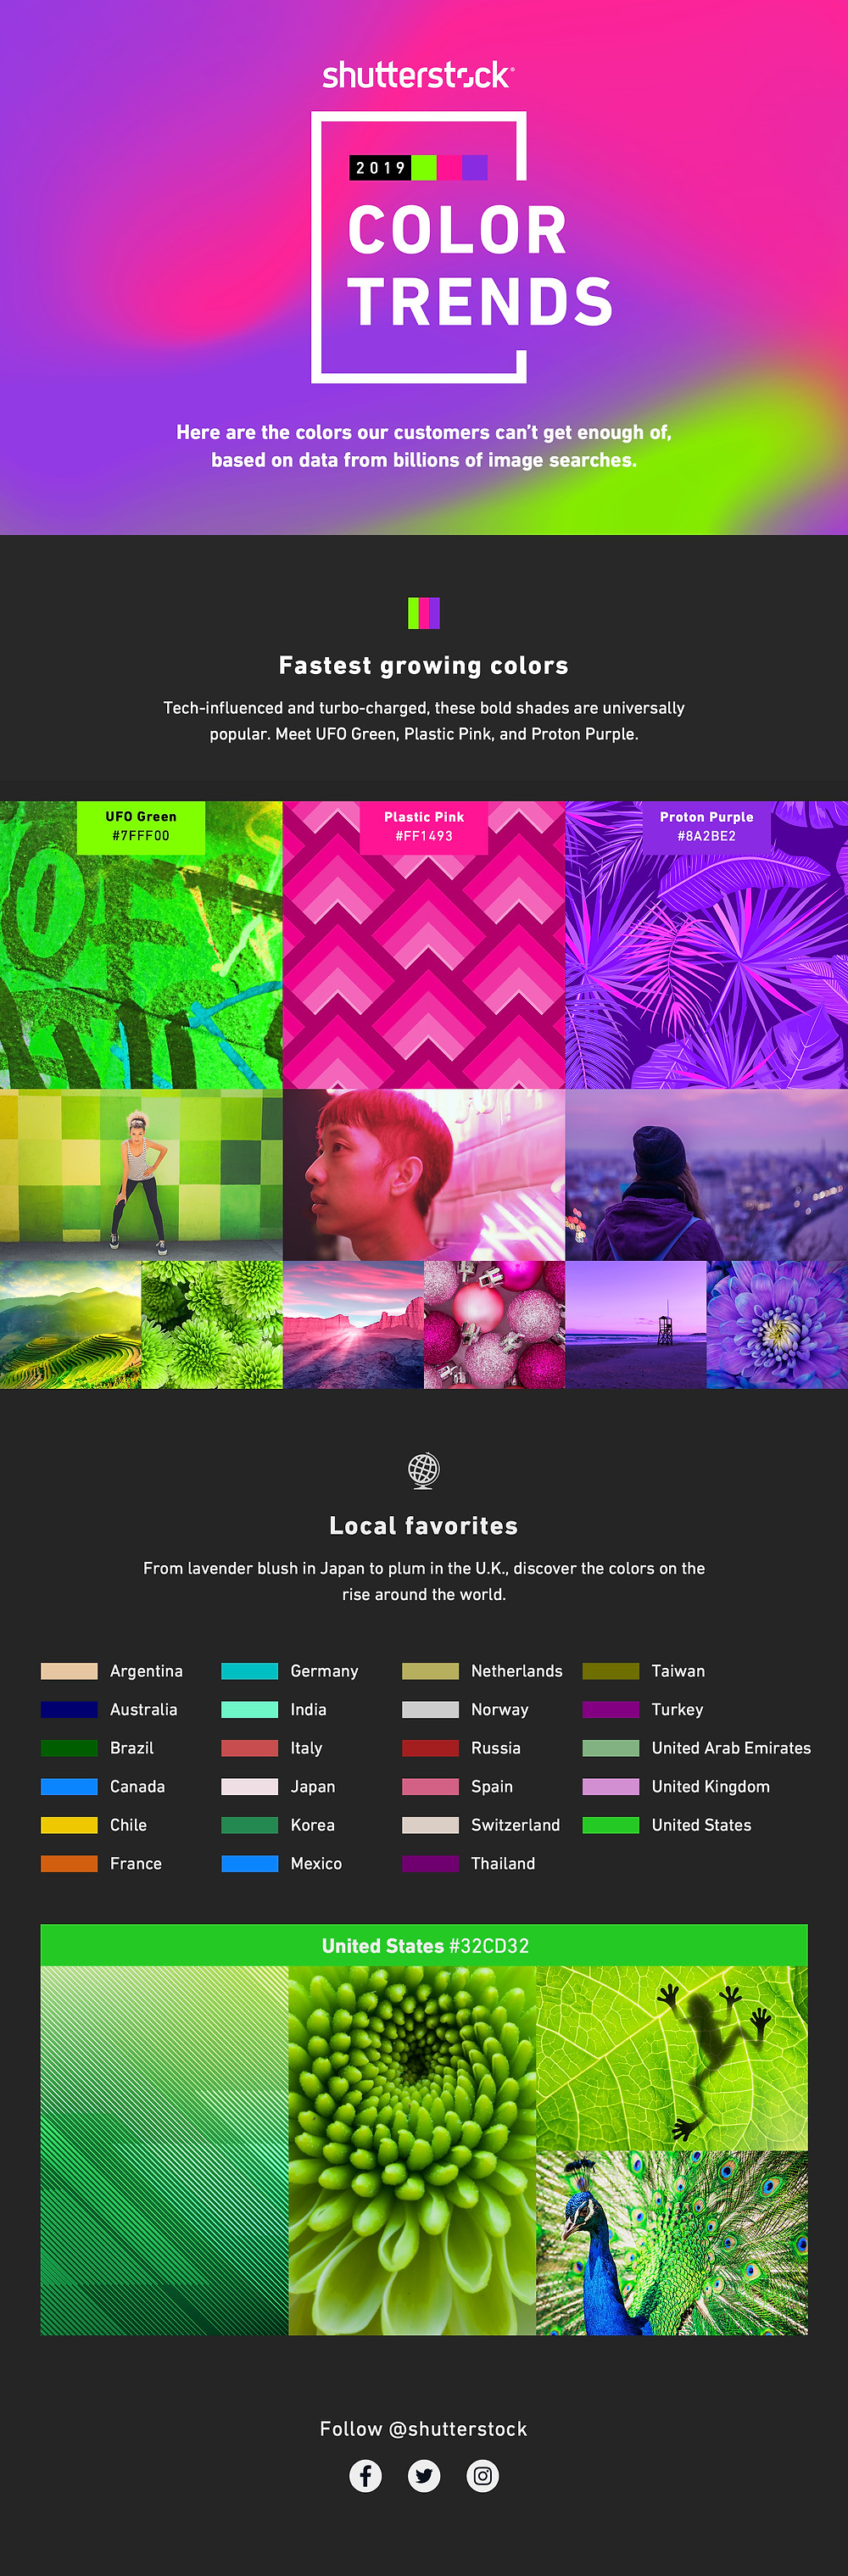 Shutterstock 2019 Color Trend Infographic